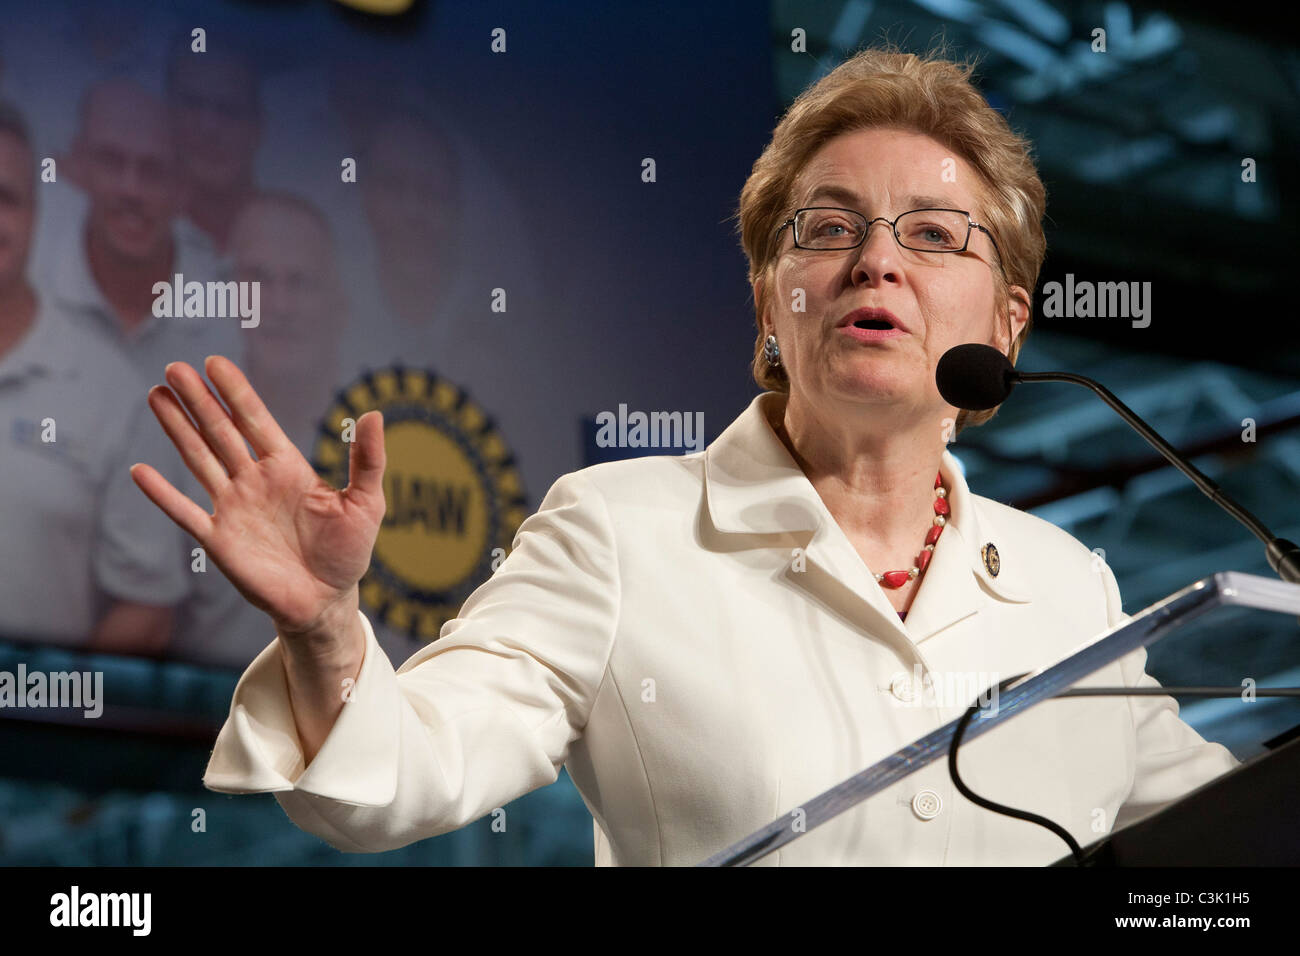 Toledo, Ohio - Congressional representative Marcy Kaptur speaks to workers at General Motors' Toledo Transmission - Stock Image